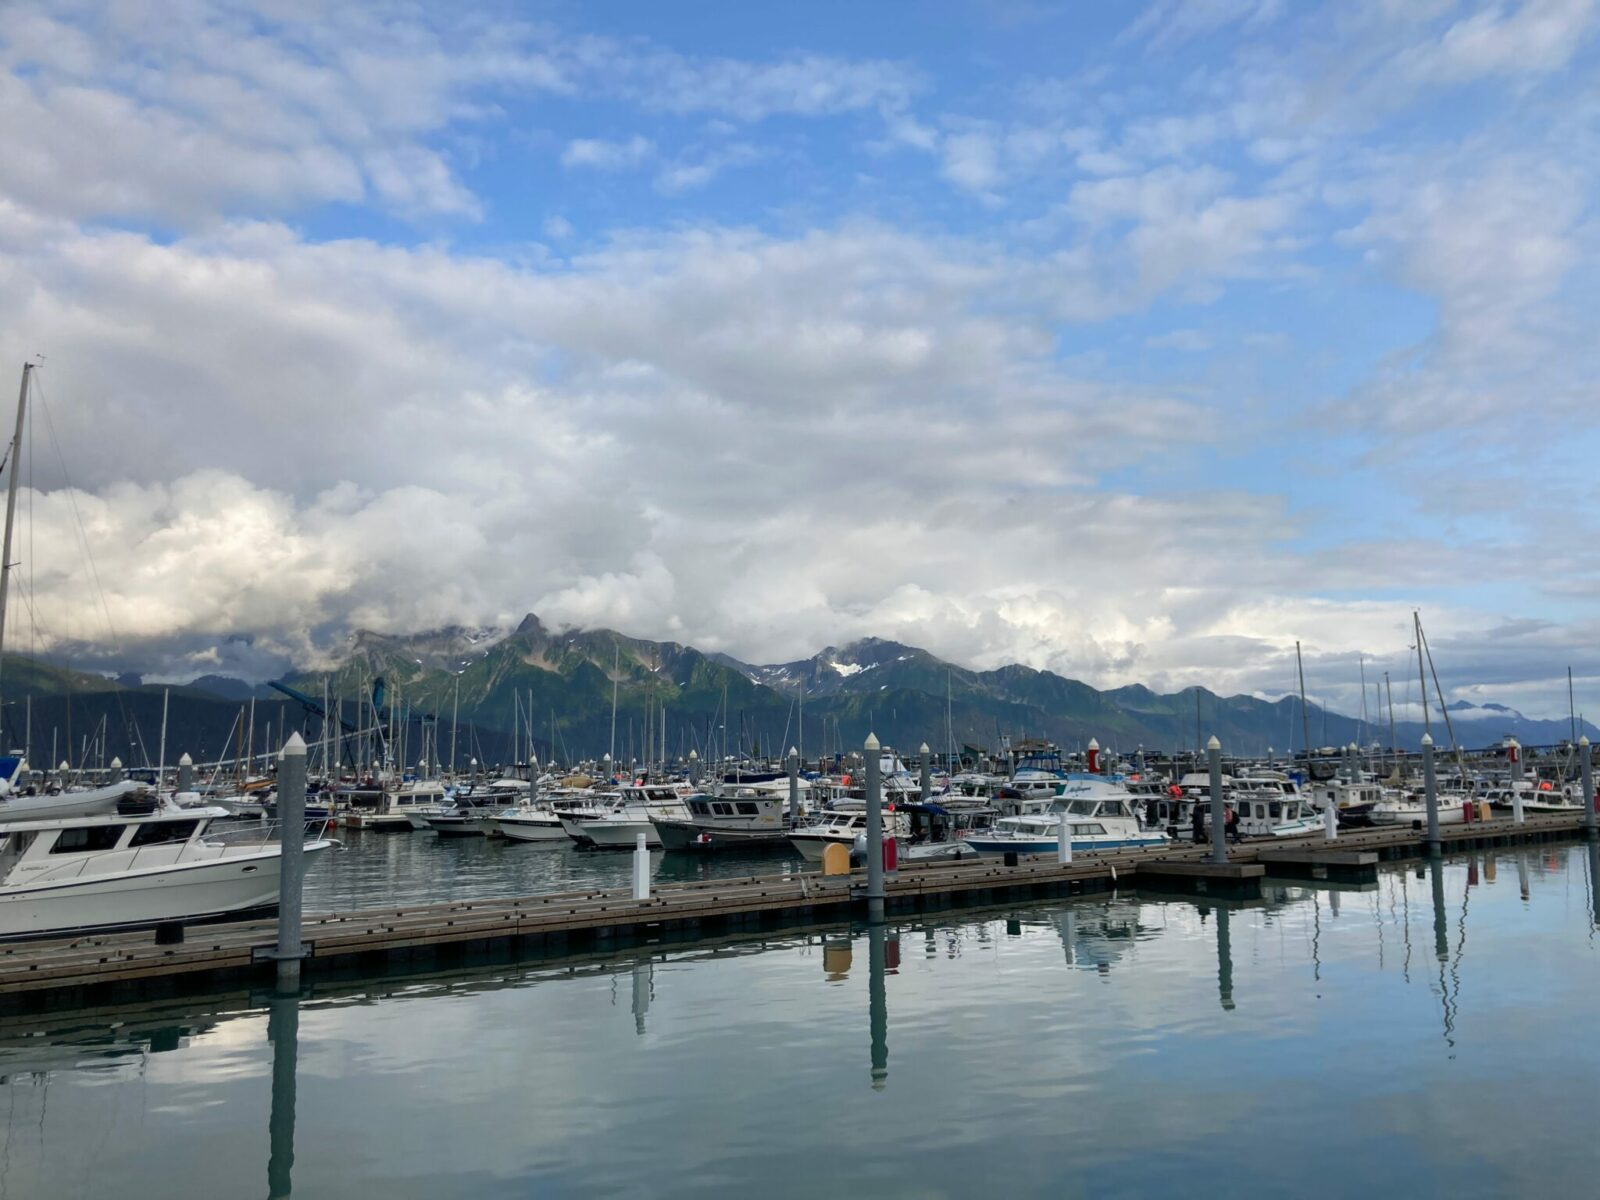 The boat harbor in Seward Alaska. There are many wooden docks with pleasure boats and fishing boats tied up. There are mountains across the fjord from the harbor that are partially obscured by clouds on an otherwise sunny day